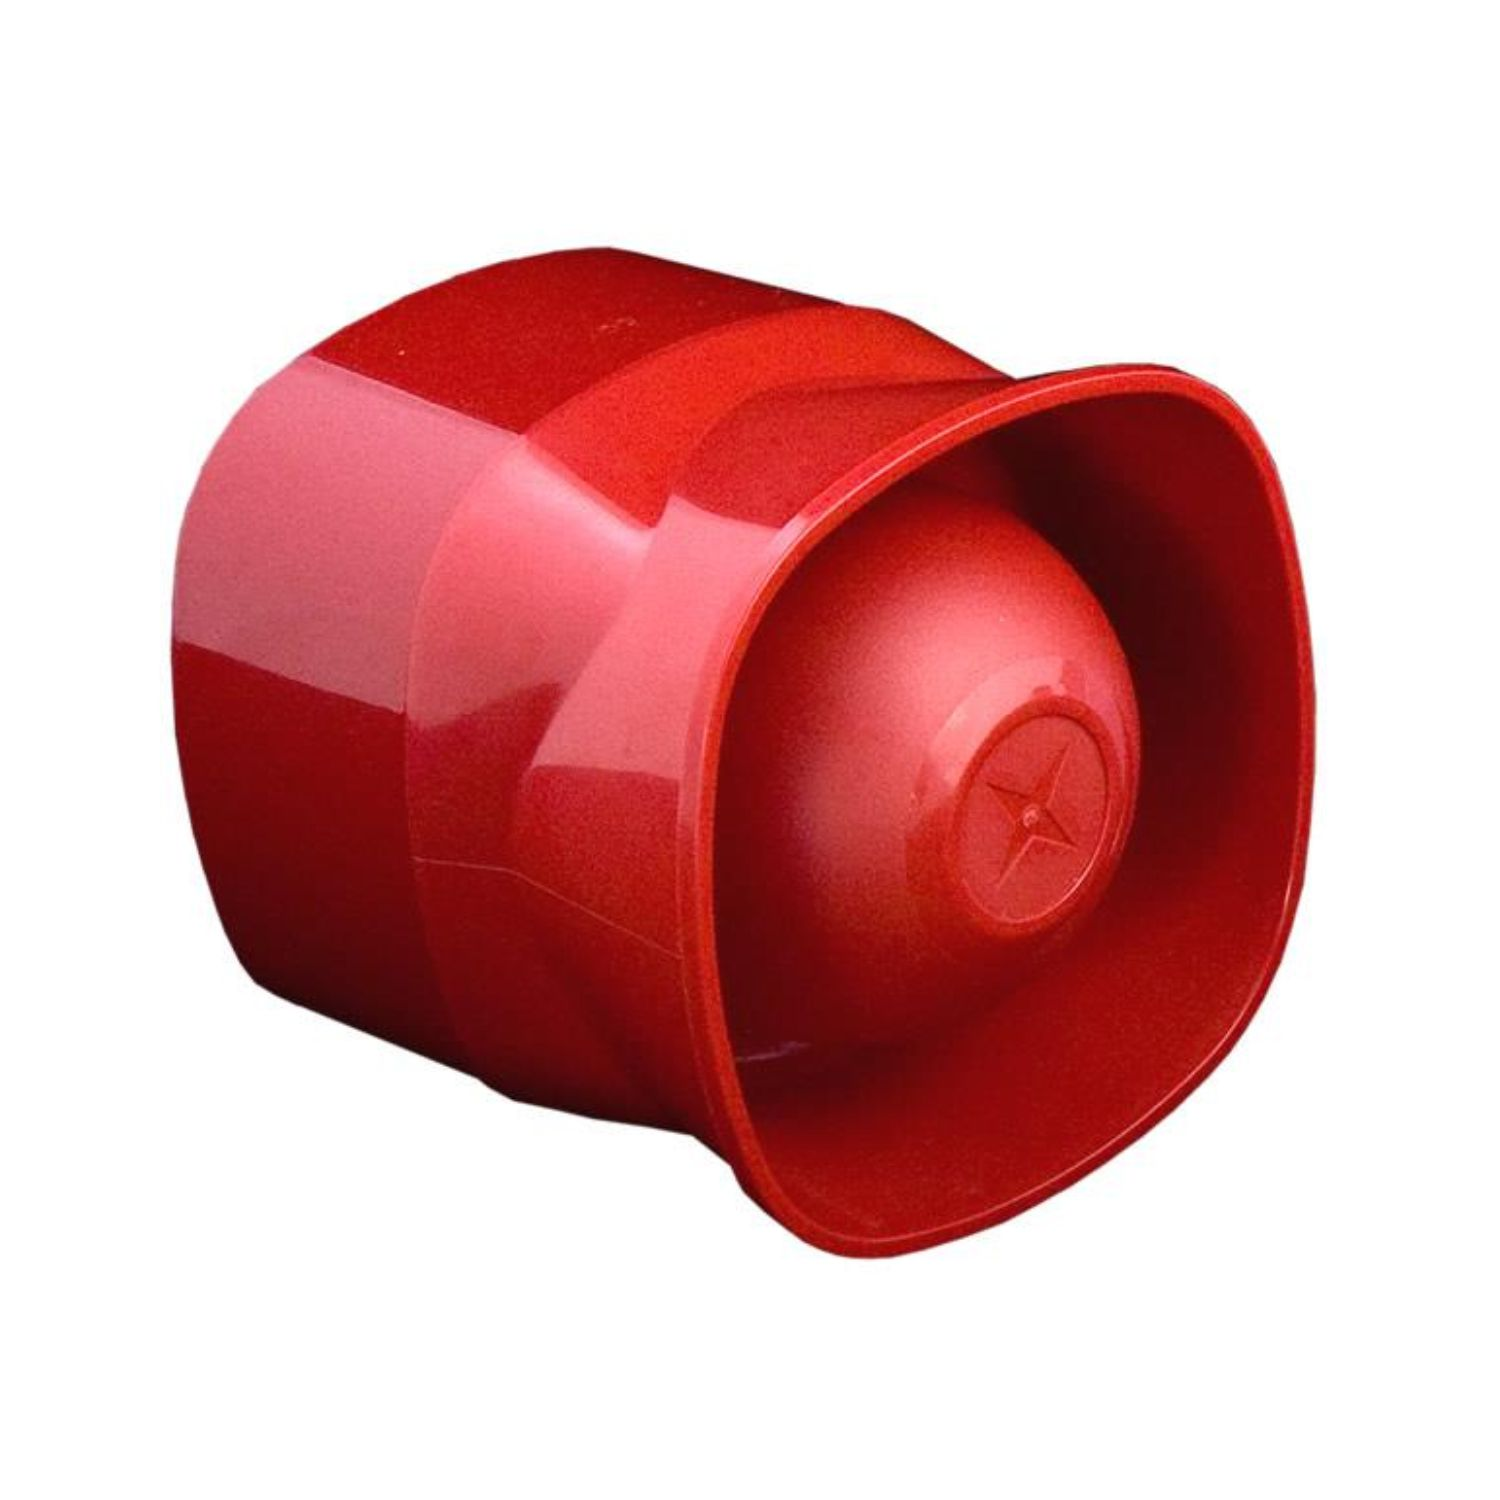 Wireless Wall Sounder - red case